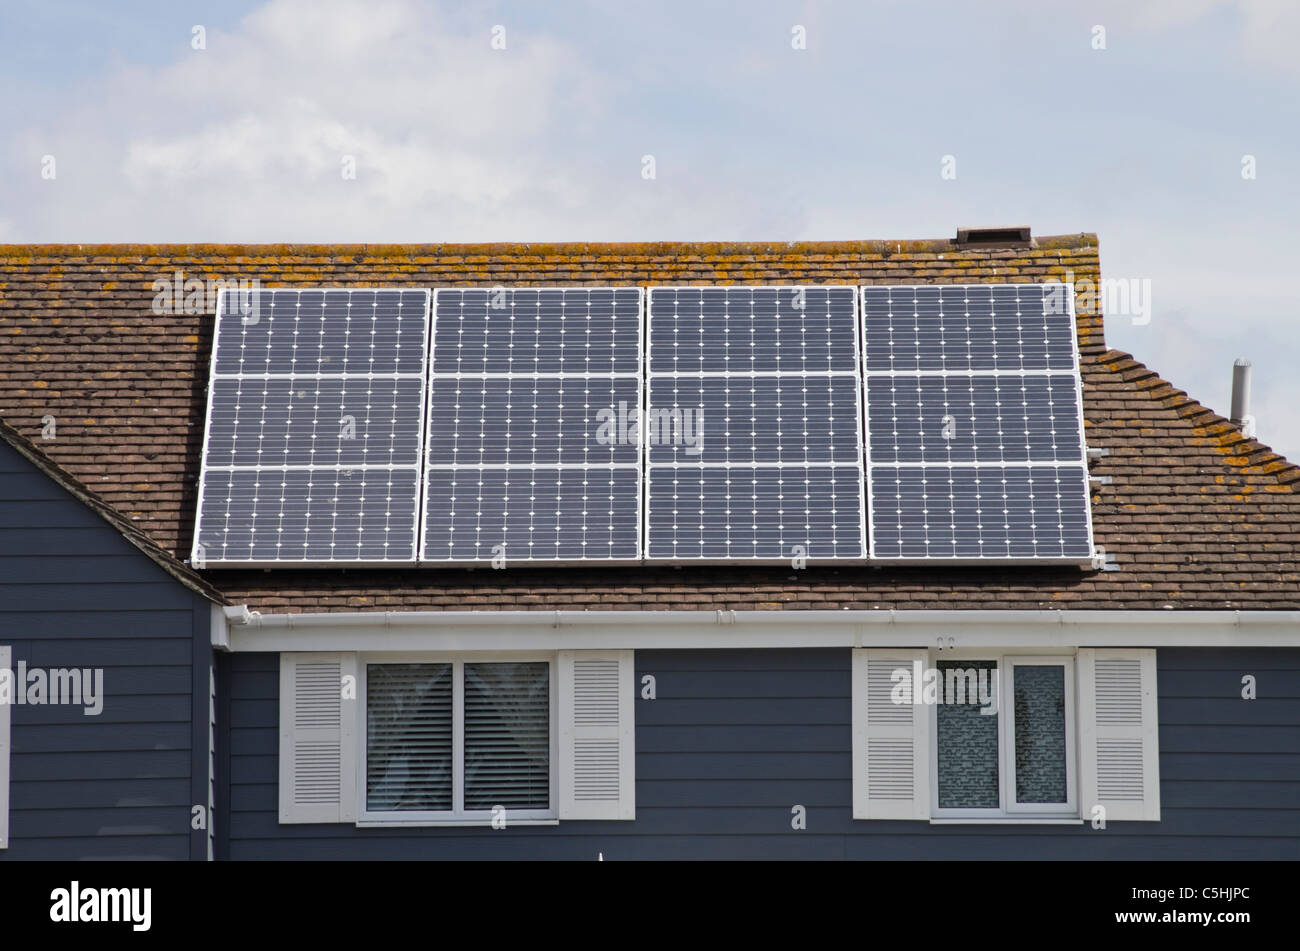 Twelve photovoltaic solar panels on an energy efficient eco home house roof residential domestic property. West - Stock Image